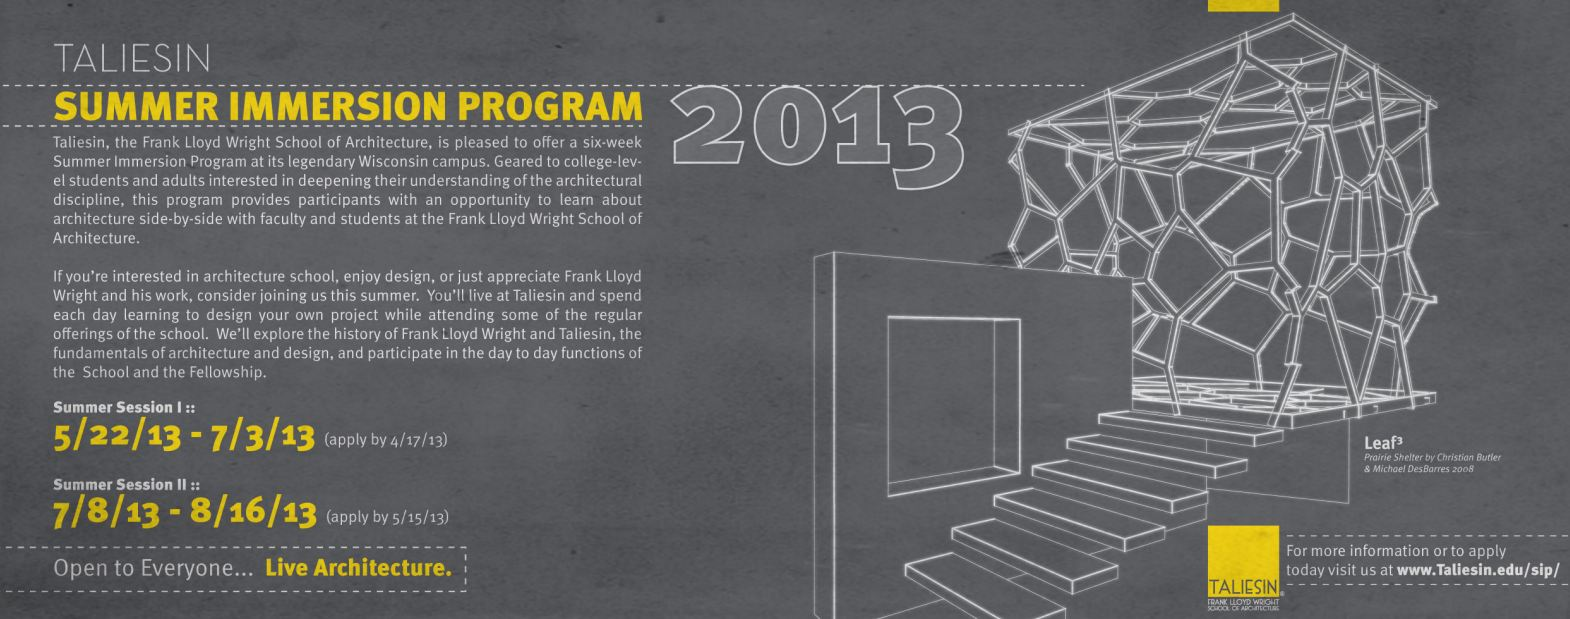 F.L.W School of Architecture, is pleased to offer a six-week Summer Immersion Program